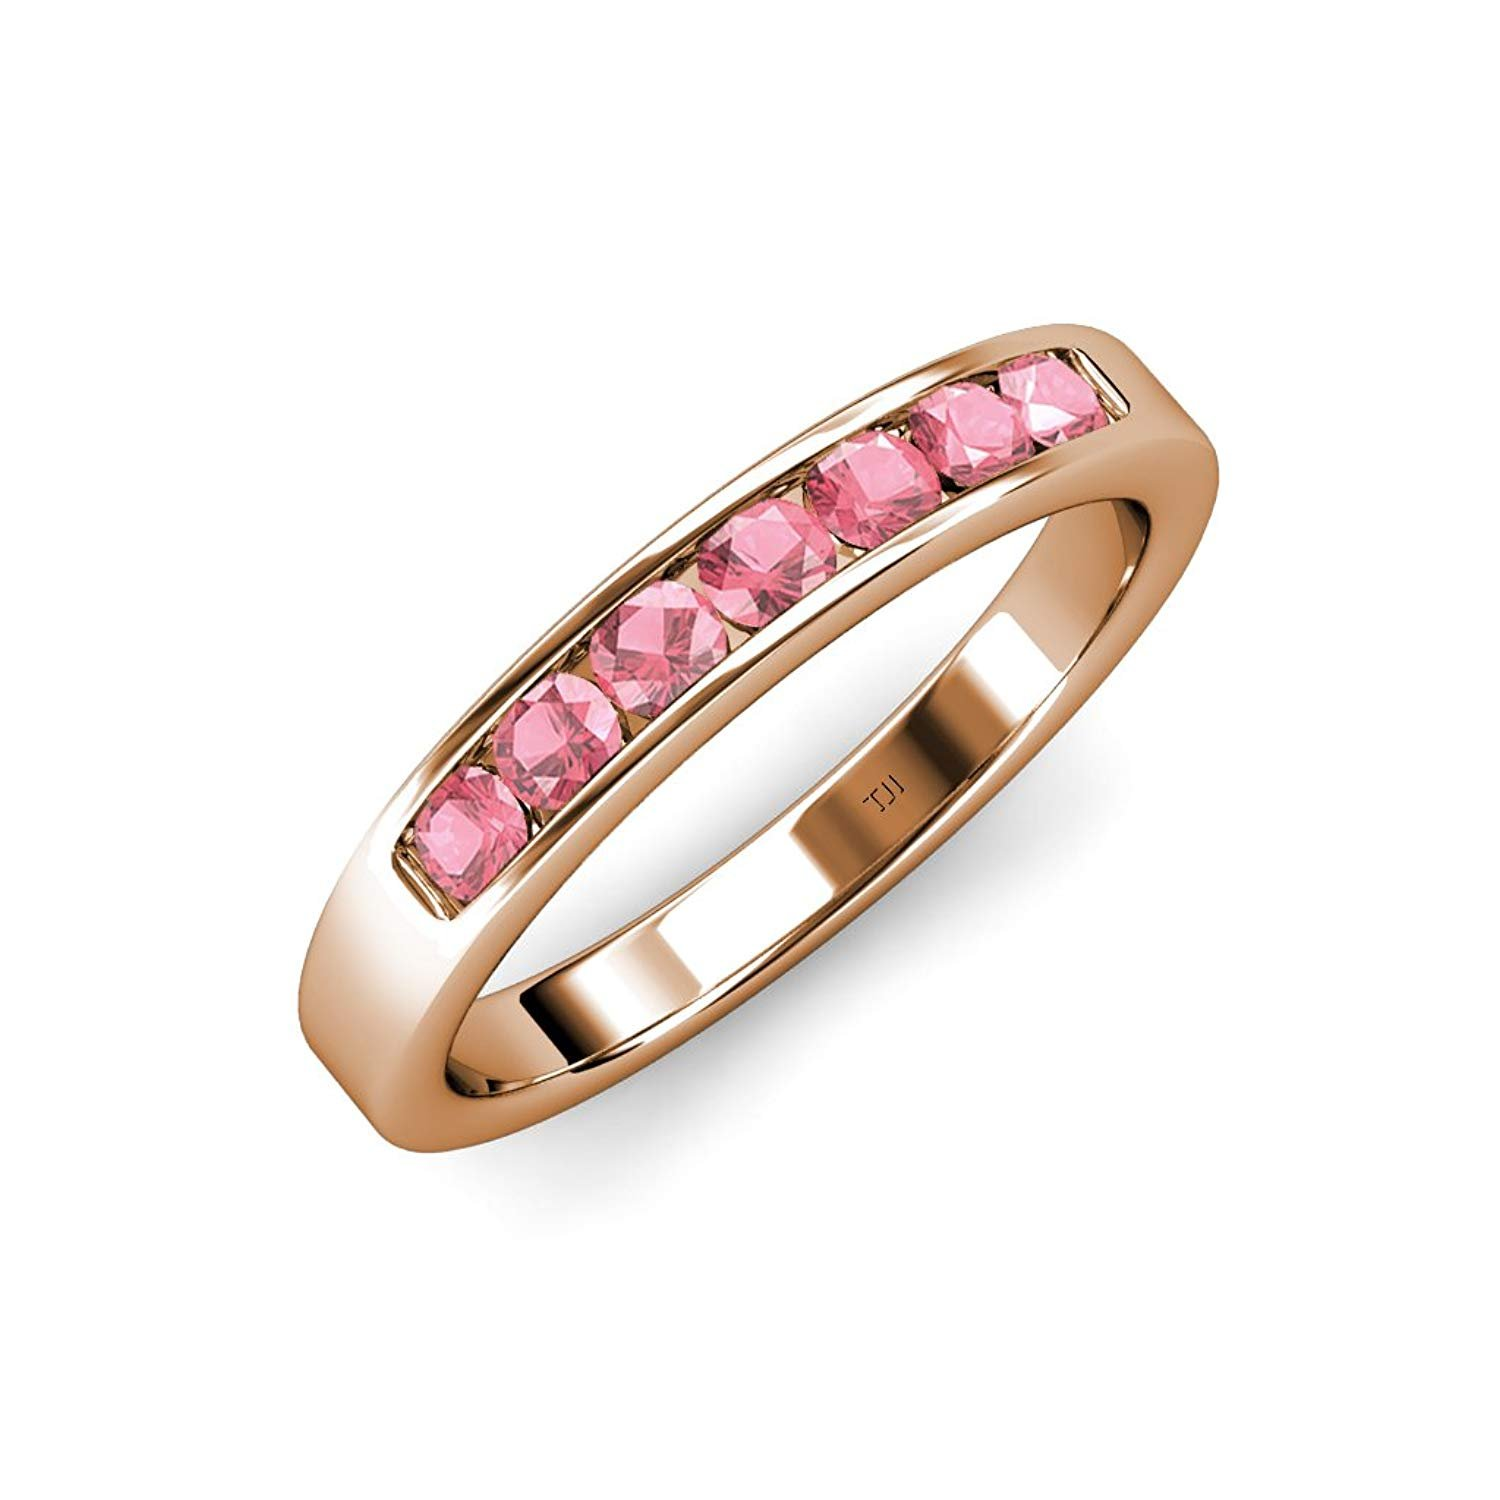 Pink Tourmaline 7 Stone Channel Set Wedding Band 0.73 ct tw in 14K Rose Gold.size 9 by TriJewels